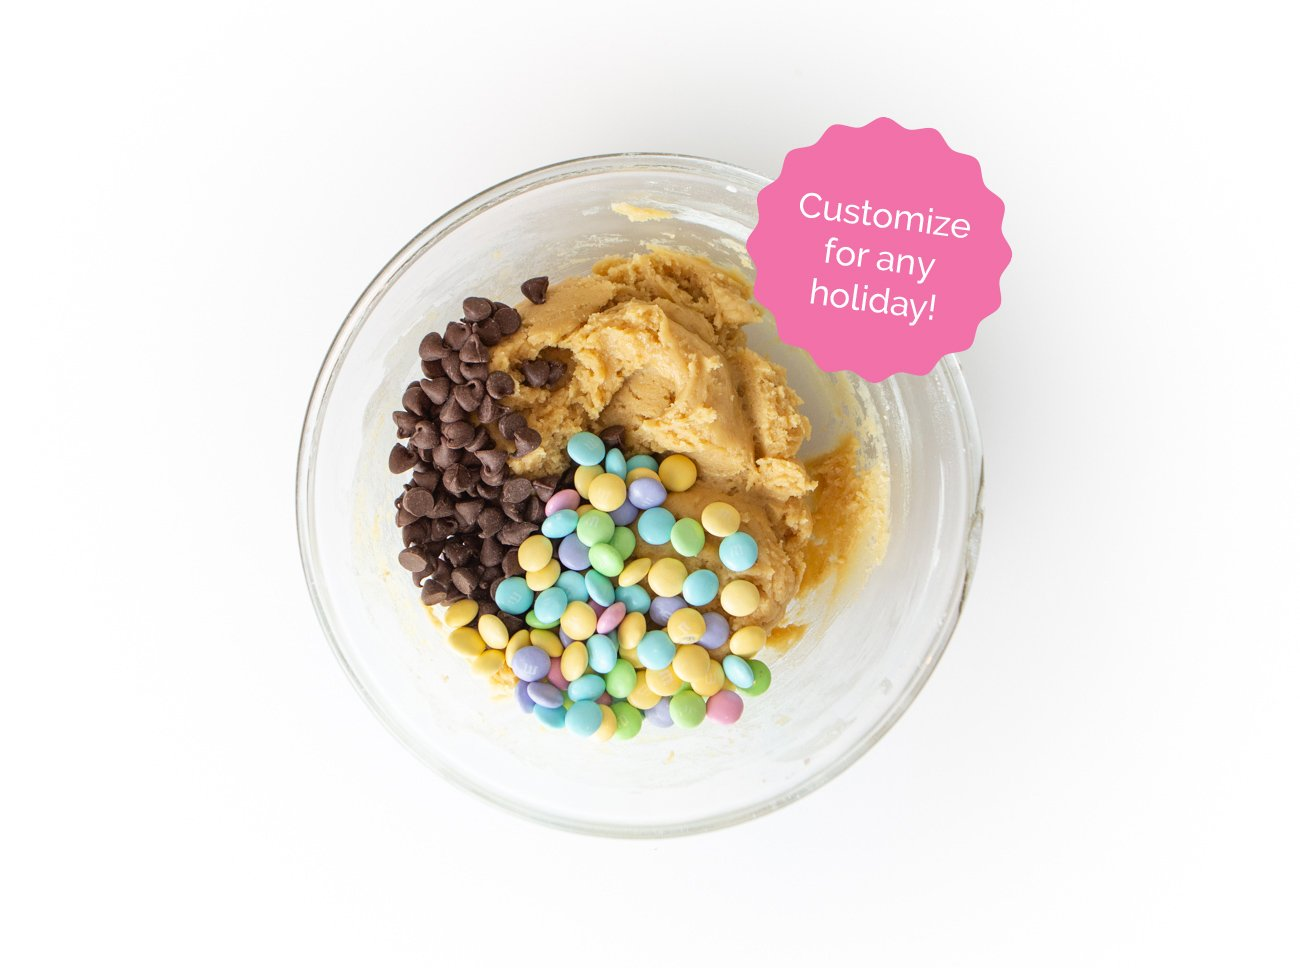 Bowl of chocolate chip cookie dough with easter M&m's